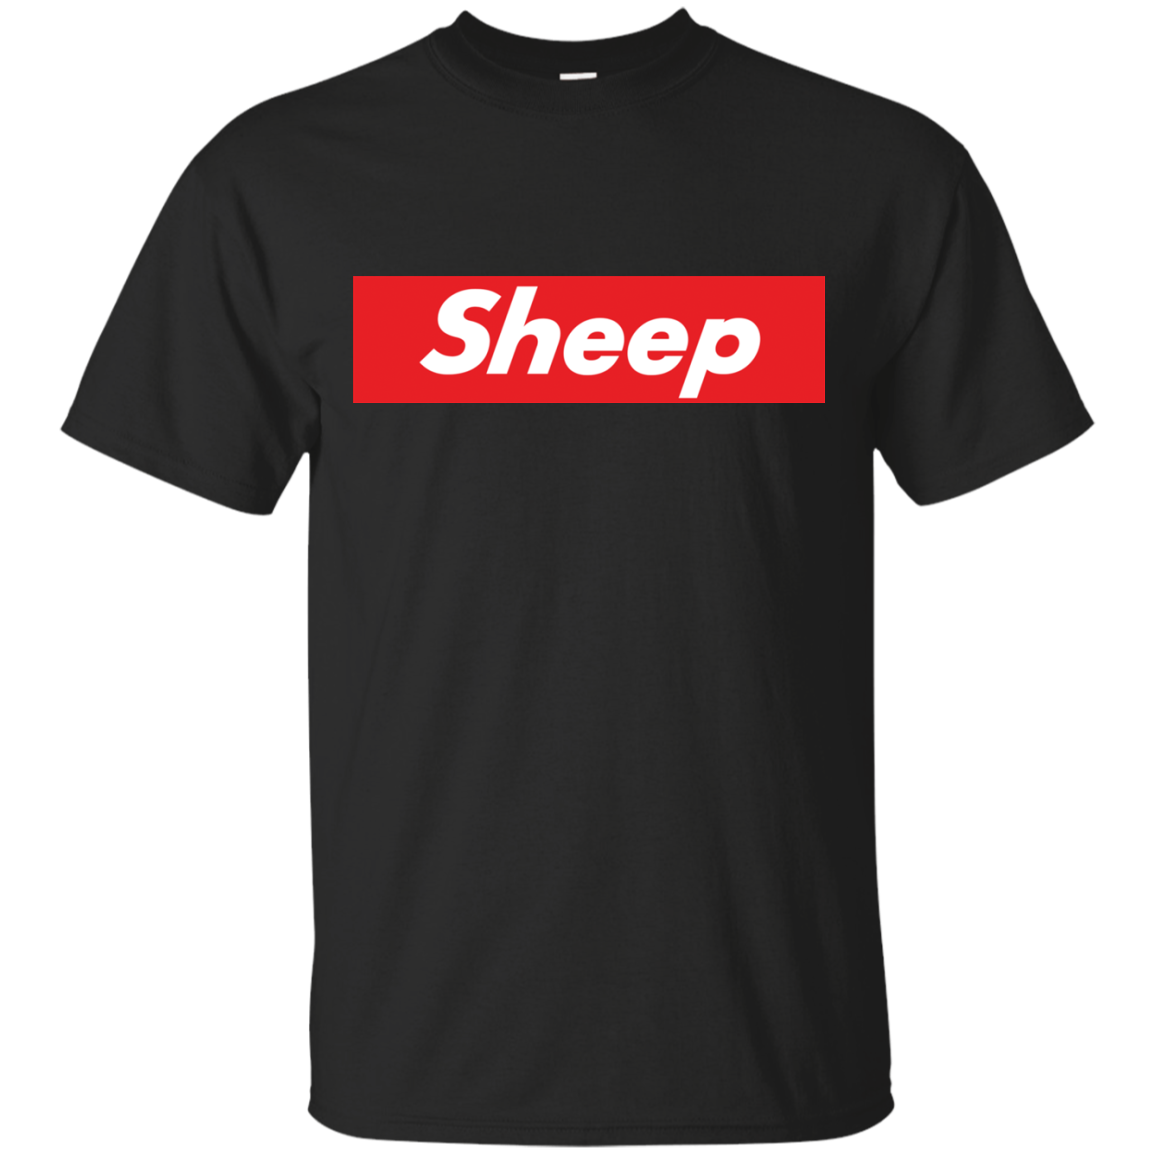 Supreme shirt png. Sheep t shirts hoodies